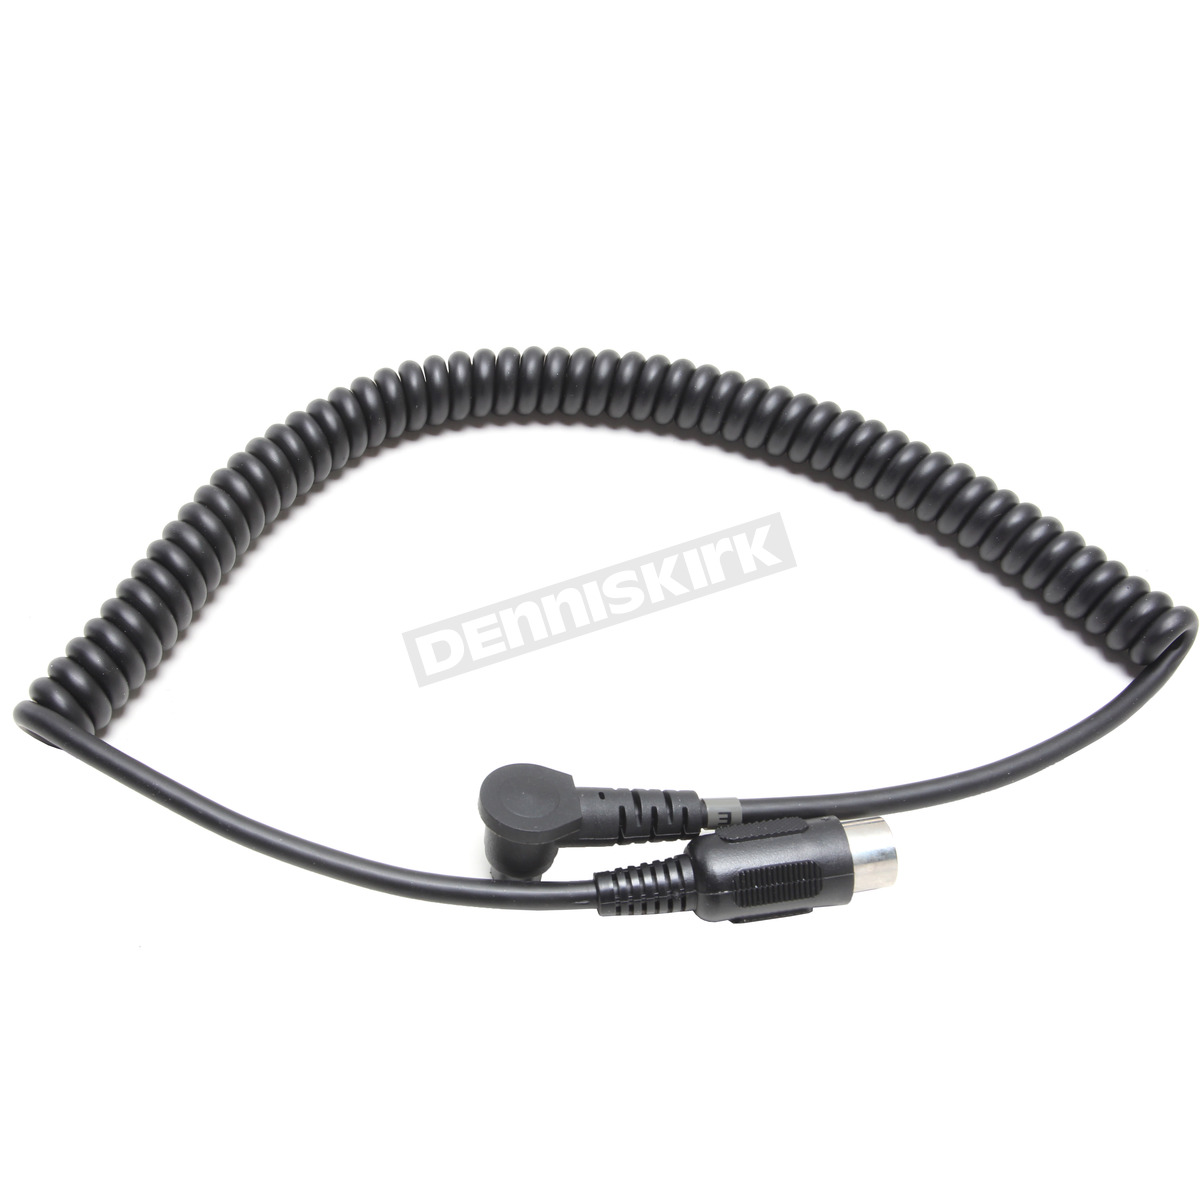 J&M Corporation Replacement 1-piece Hook-Up Cord w/5-pin